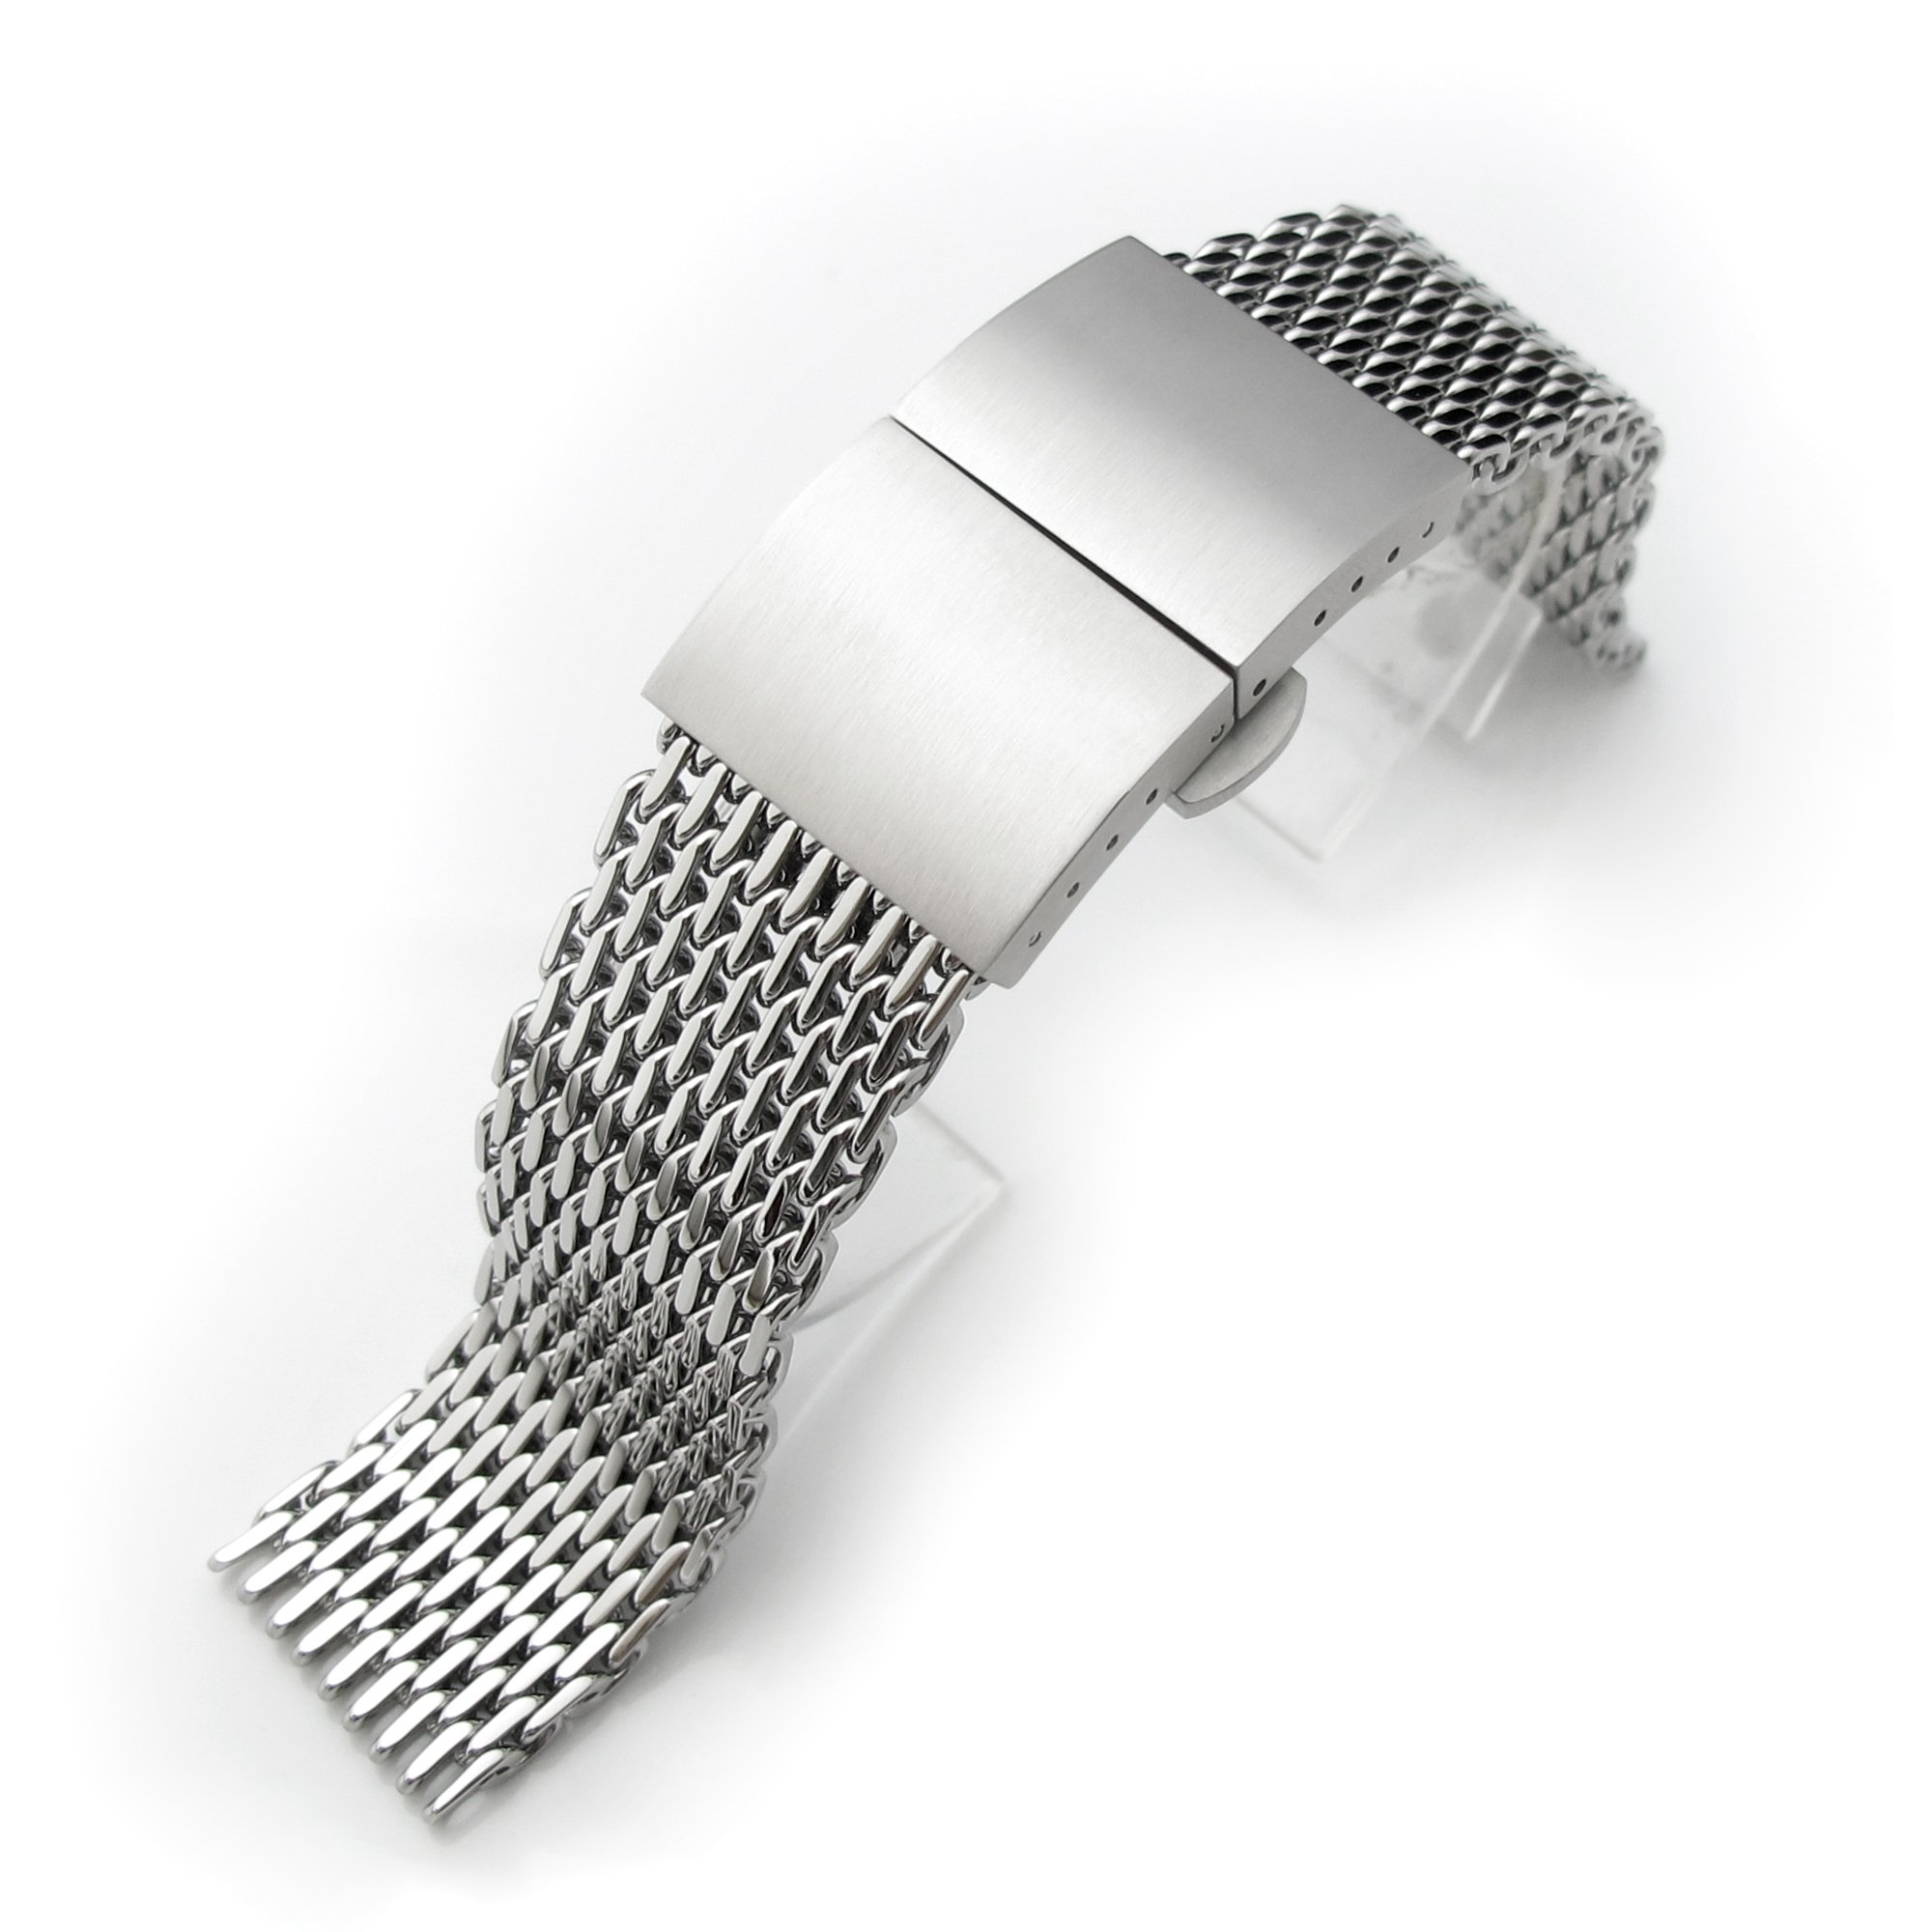 20mm Ploprof 316 SS Wire ''SHARK'' Mesh Milanese Watch Band, Dome Deployant, Polished, BB